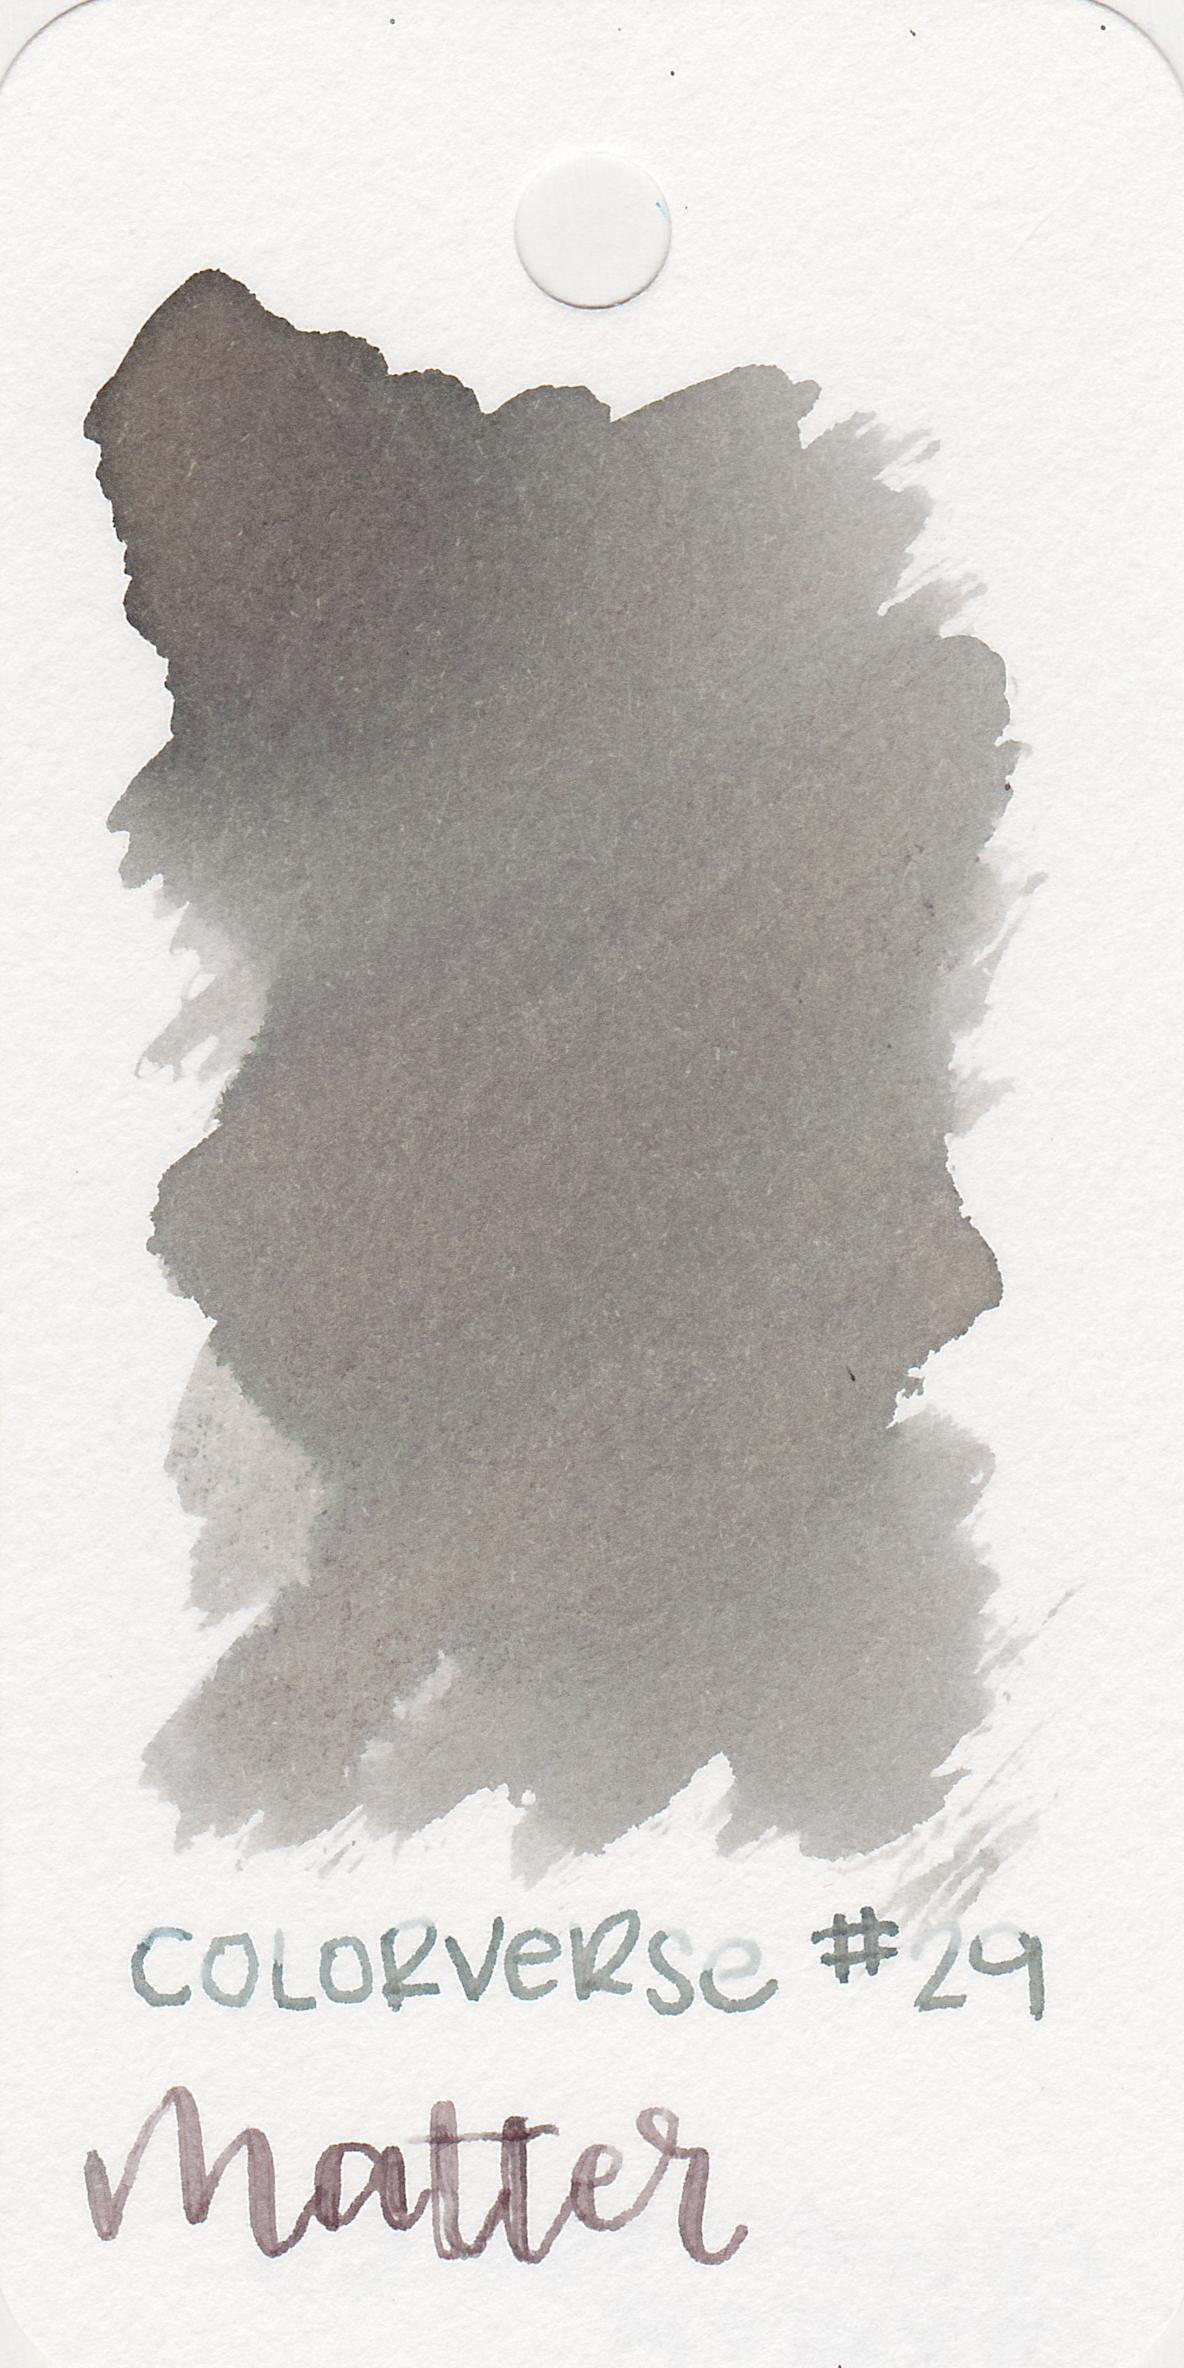 The color: - Matter looks different in every nib size, even on the same paper. In the large swab it looks a neutral grey, in a medium nib it looks a bit more green, and in the flex nib it looks a bit more brown. It also looks different on each paper. It's the chameleon of grey inks.